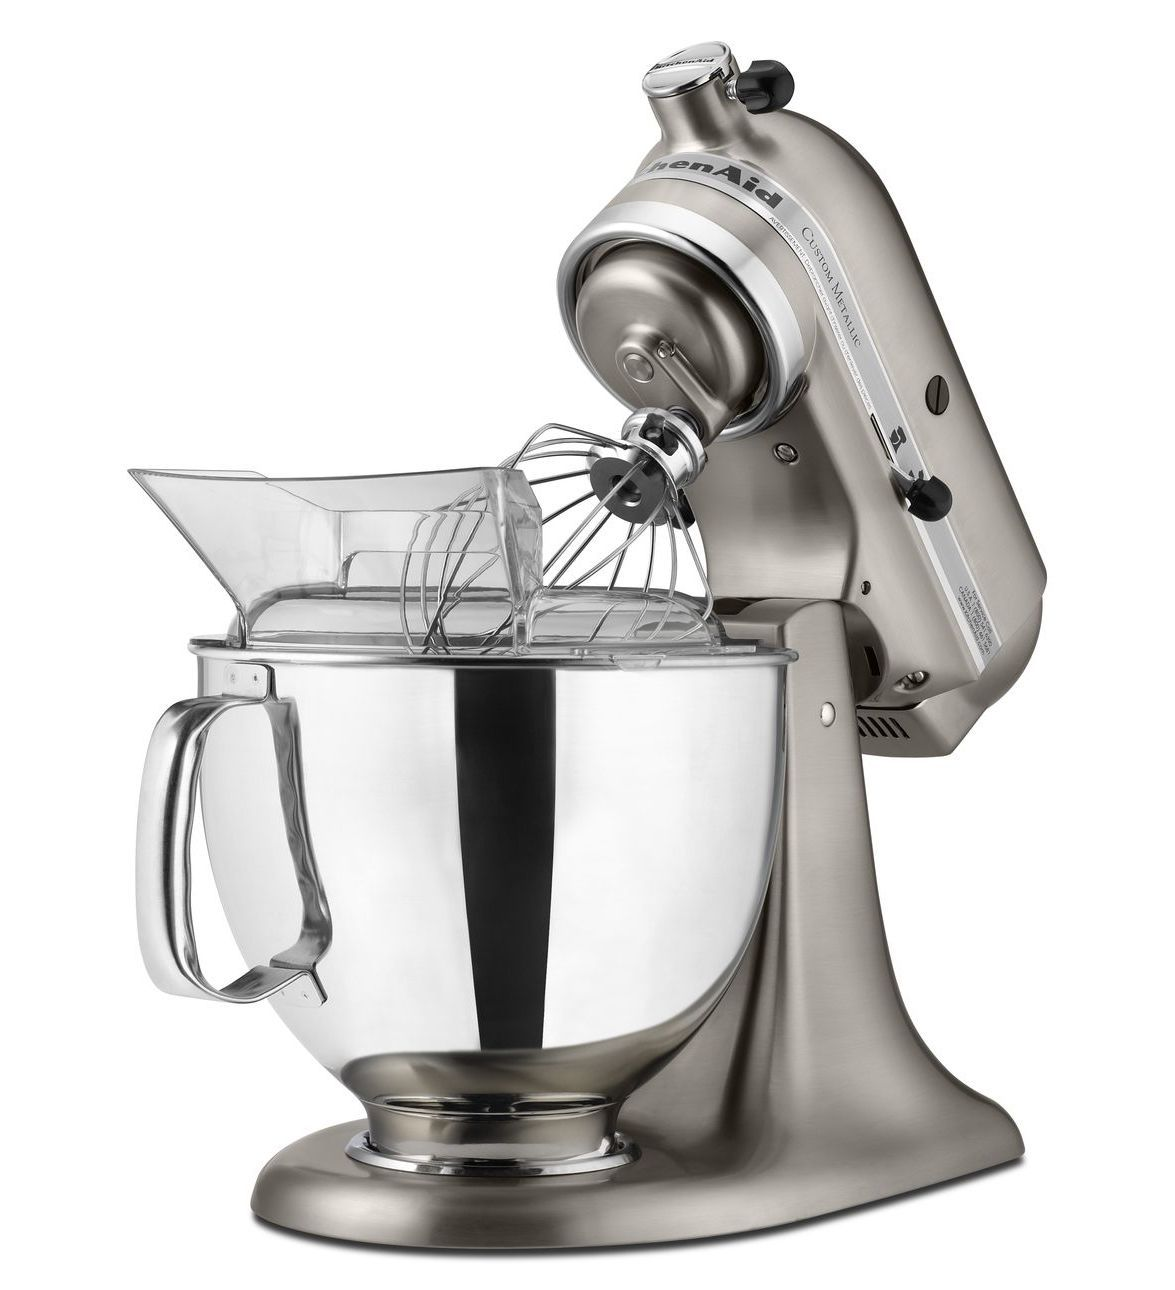 How to do it yourself kitchenaid mixer repair http